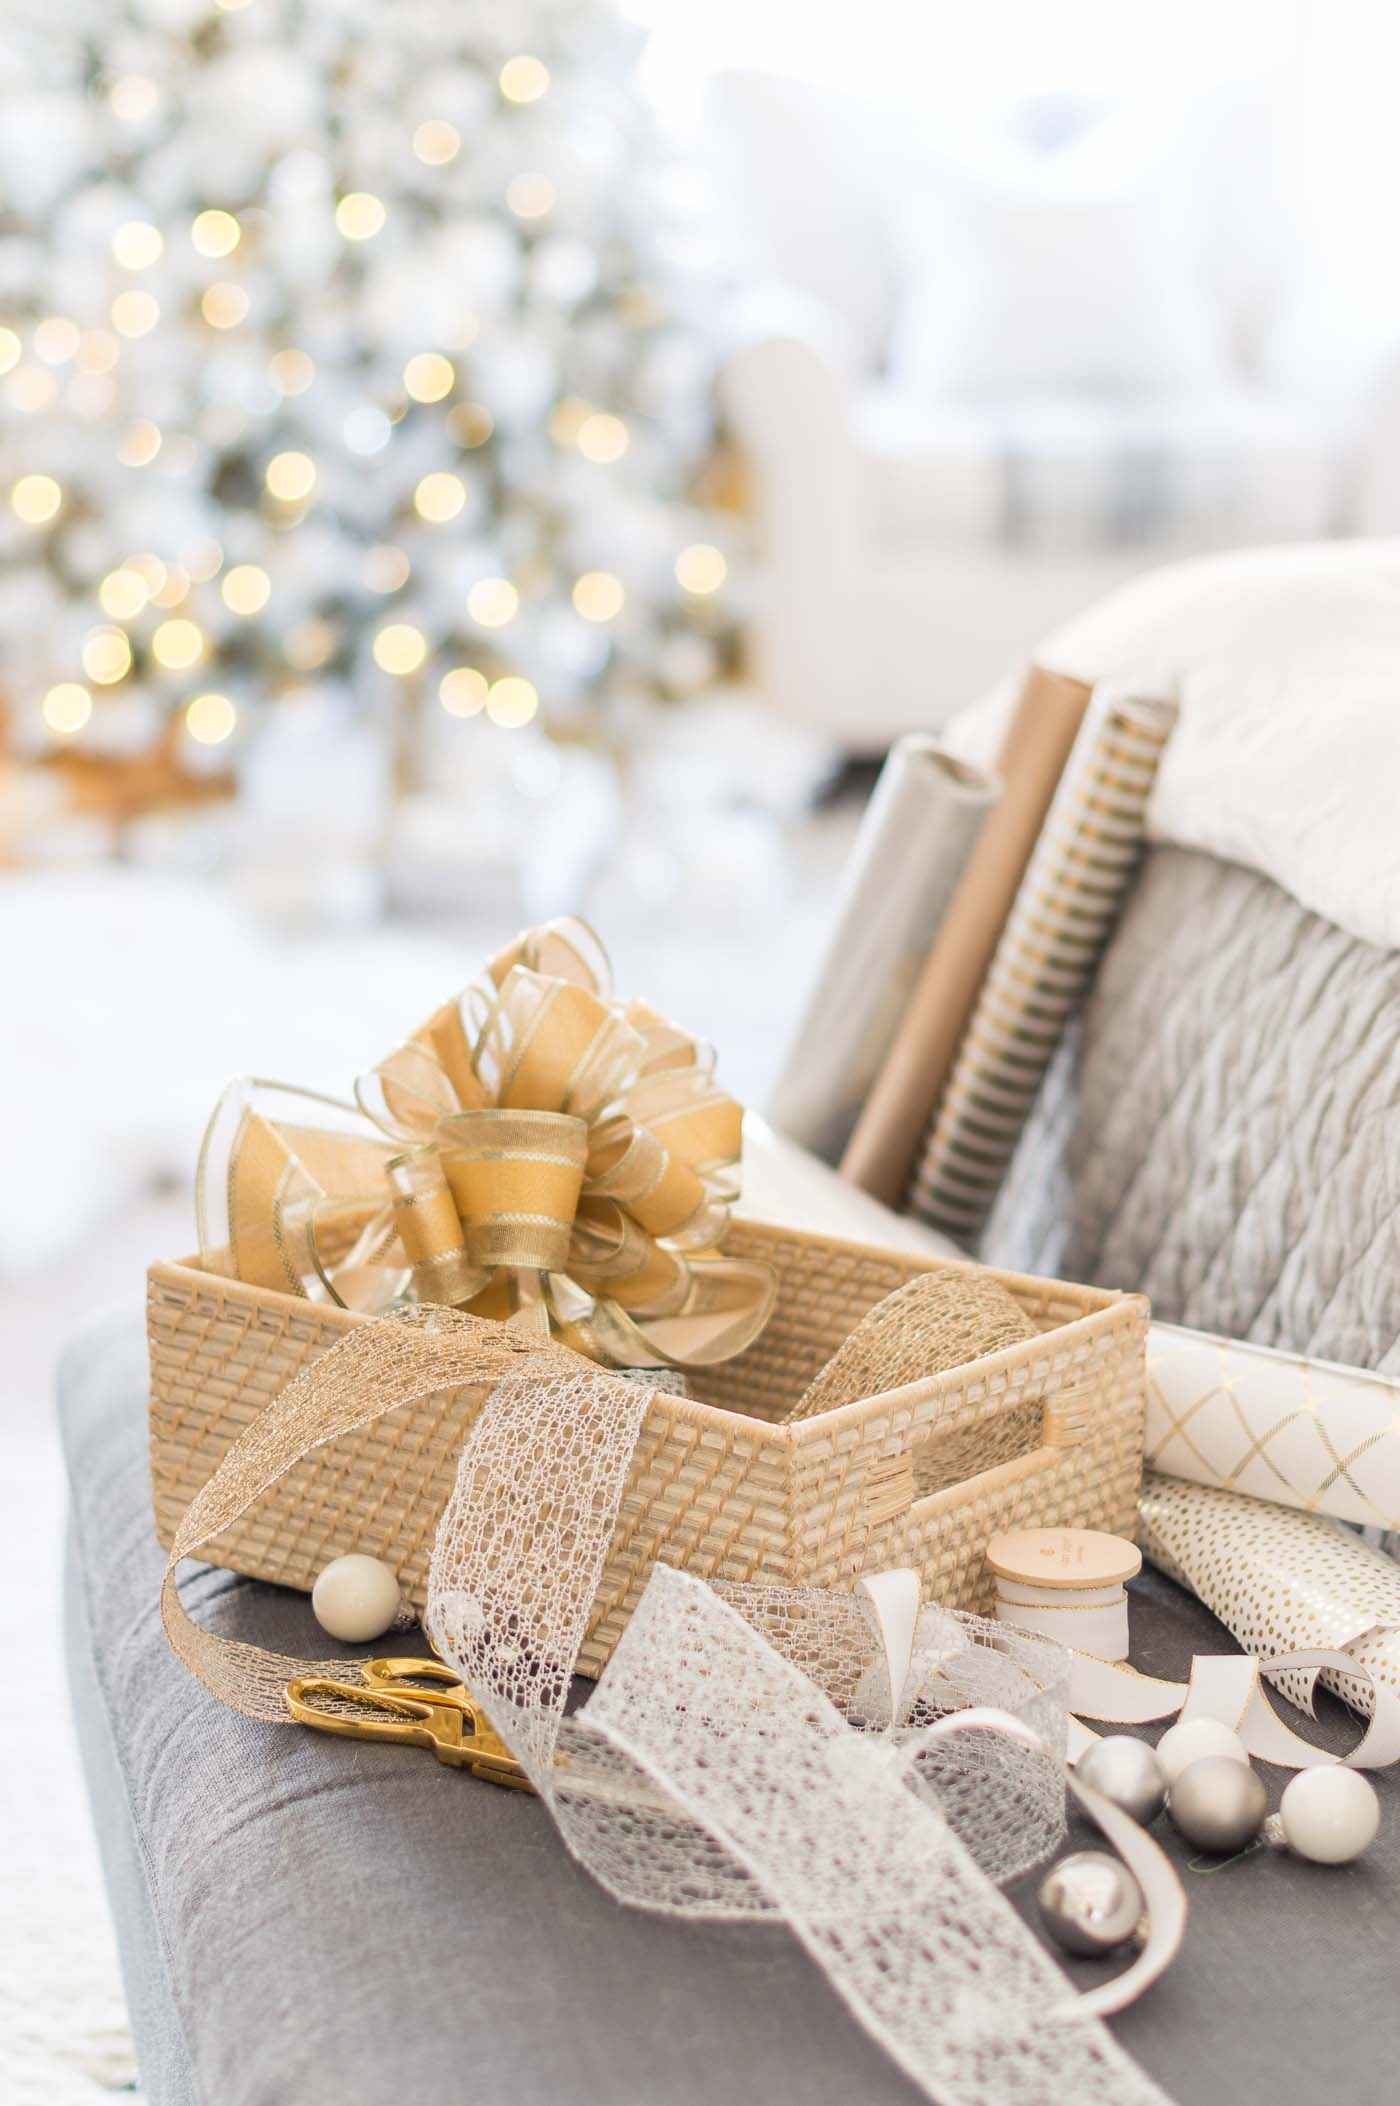 Gold and white gift wrapping color scheme and paper